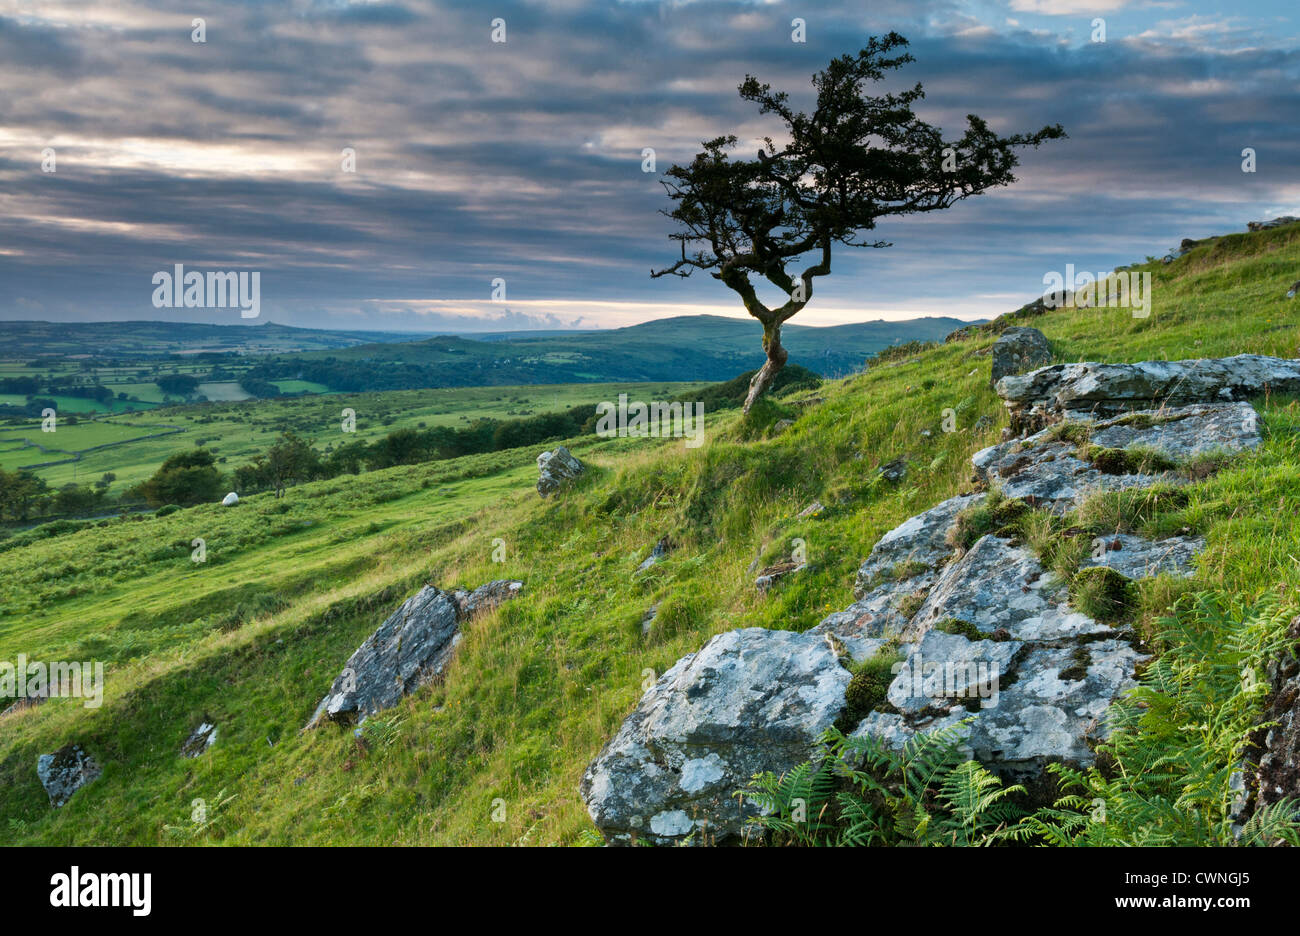 Hawthorn tree on Dartmoor at sunset, Devon, UK - Stock Image